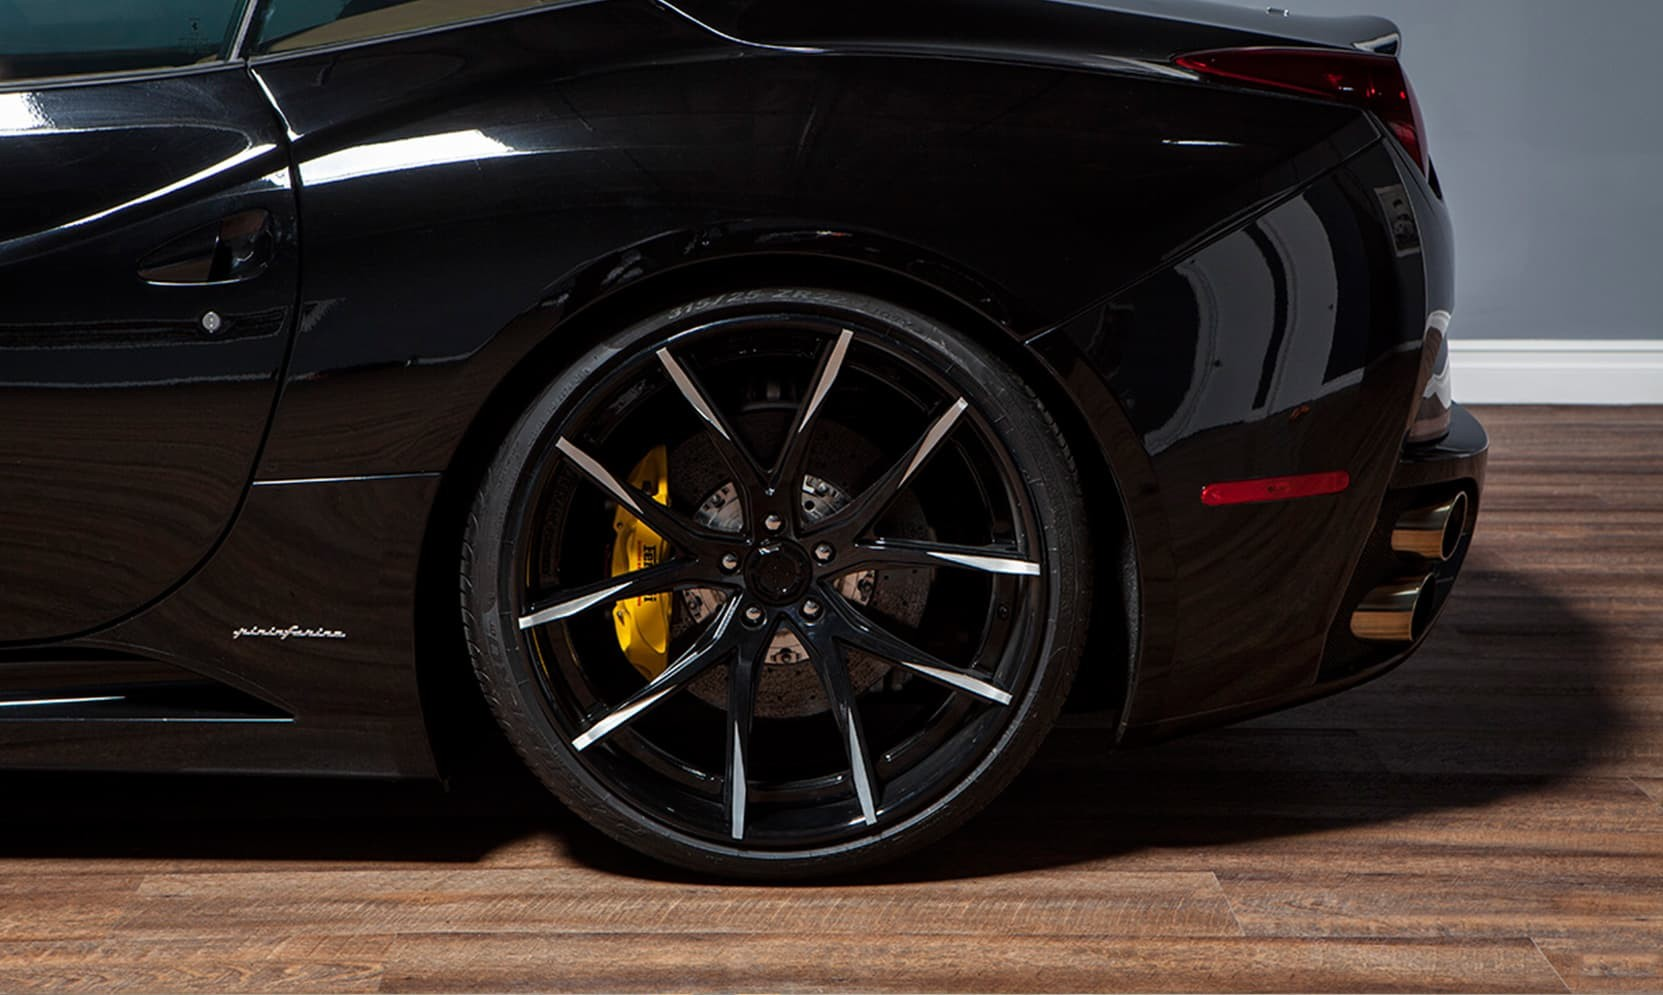 Custom LZ-102 on the Ferrari California.